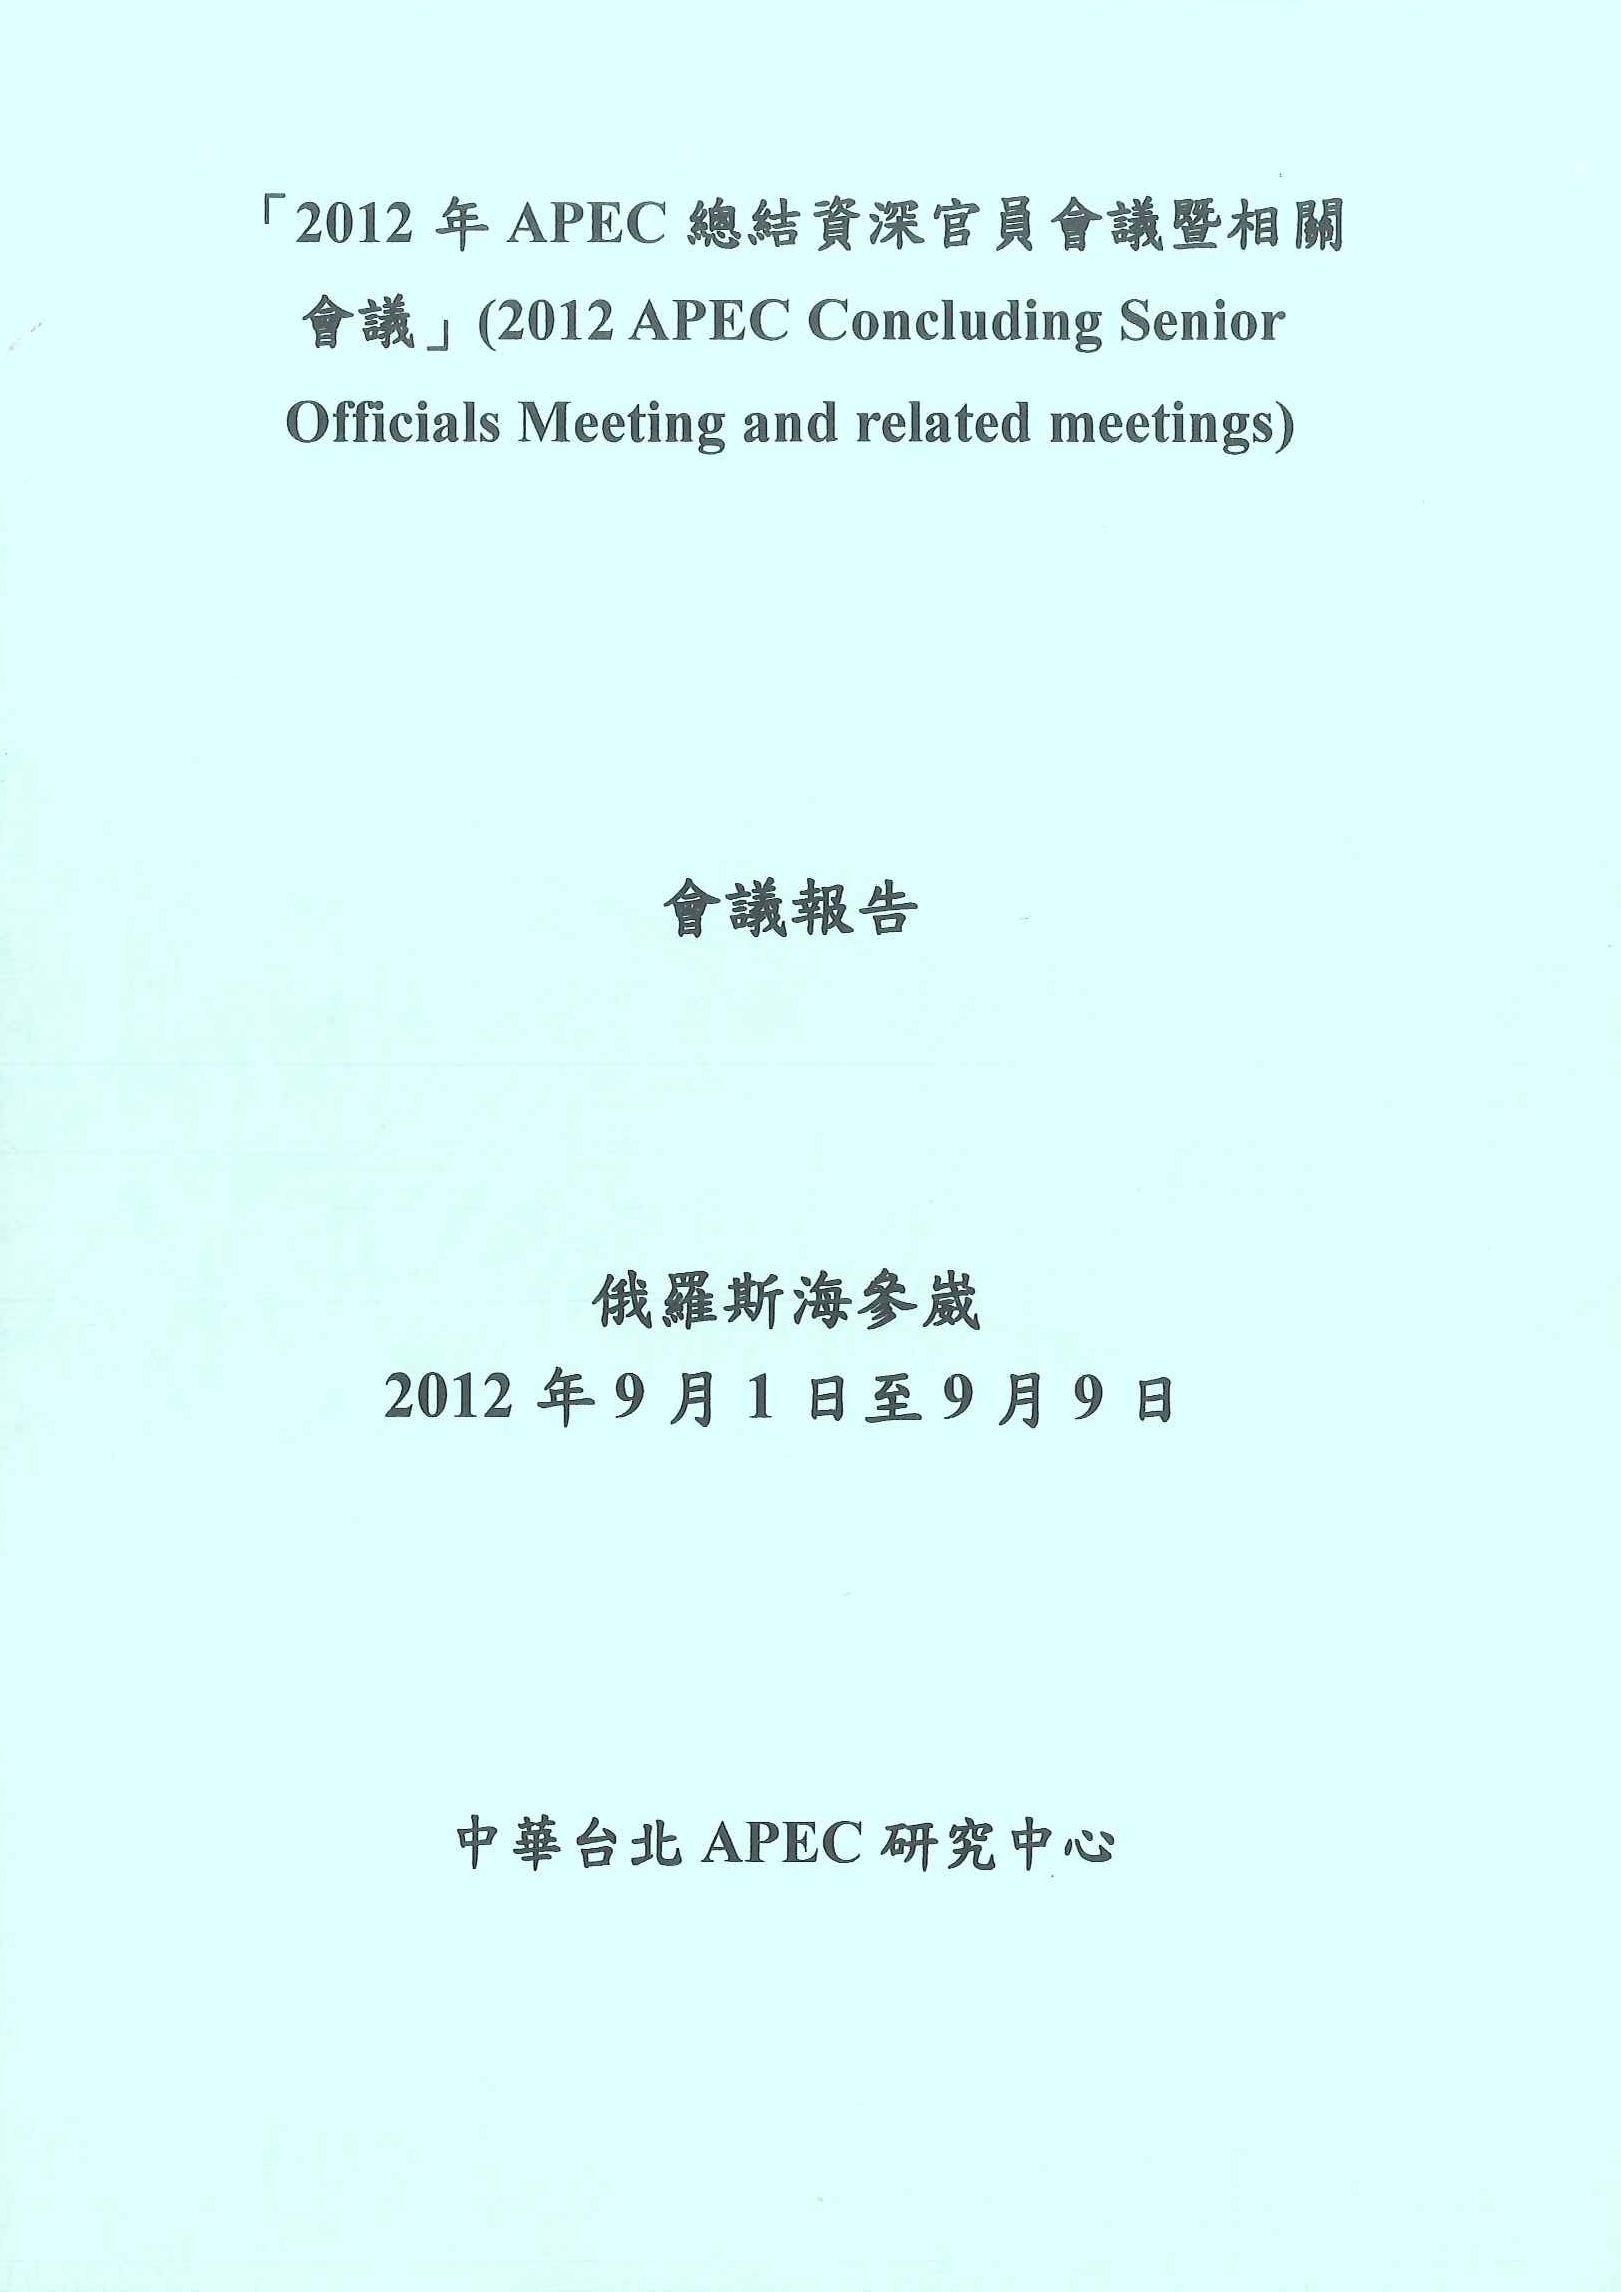 2012年APEC總結資深官員會議暨相關會議=2012 APEC Concluding senior officials meeting and related meetings